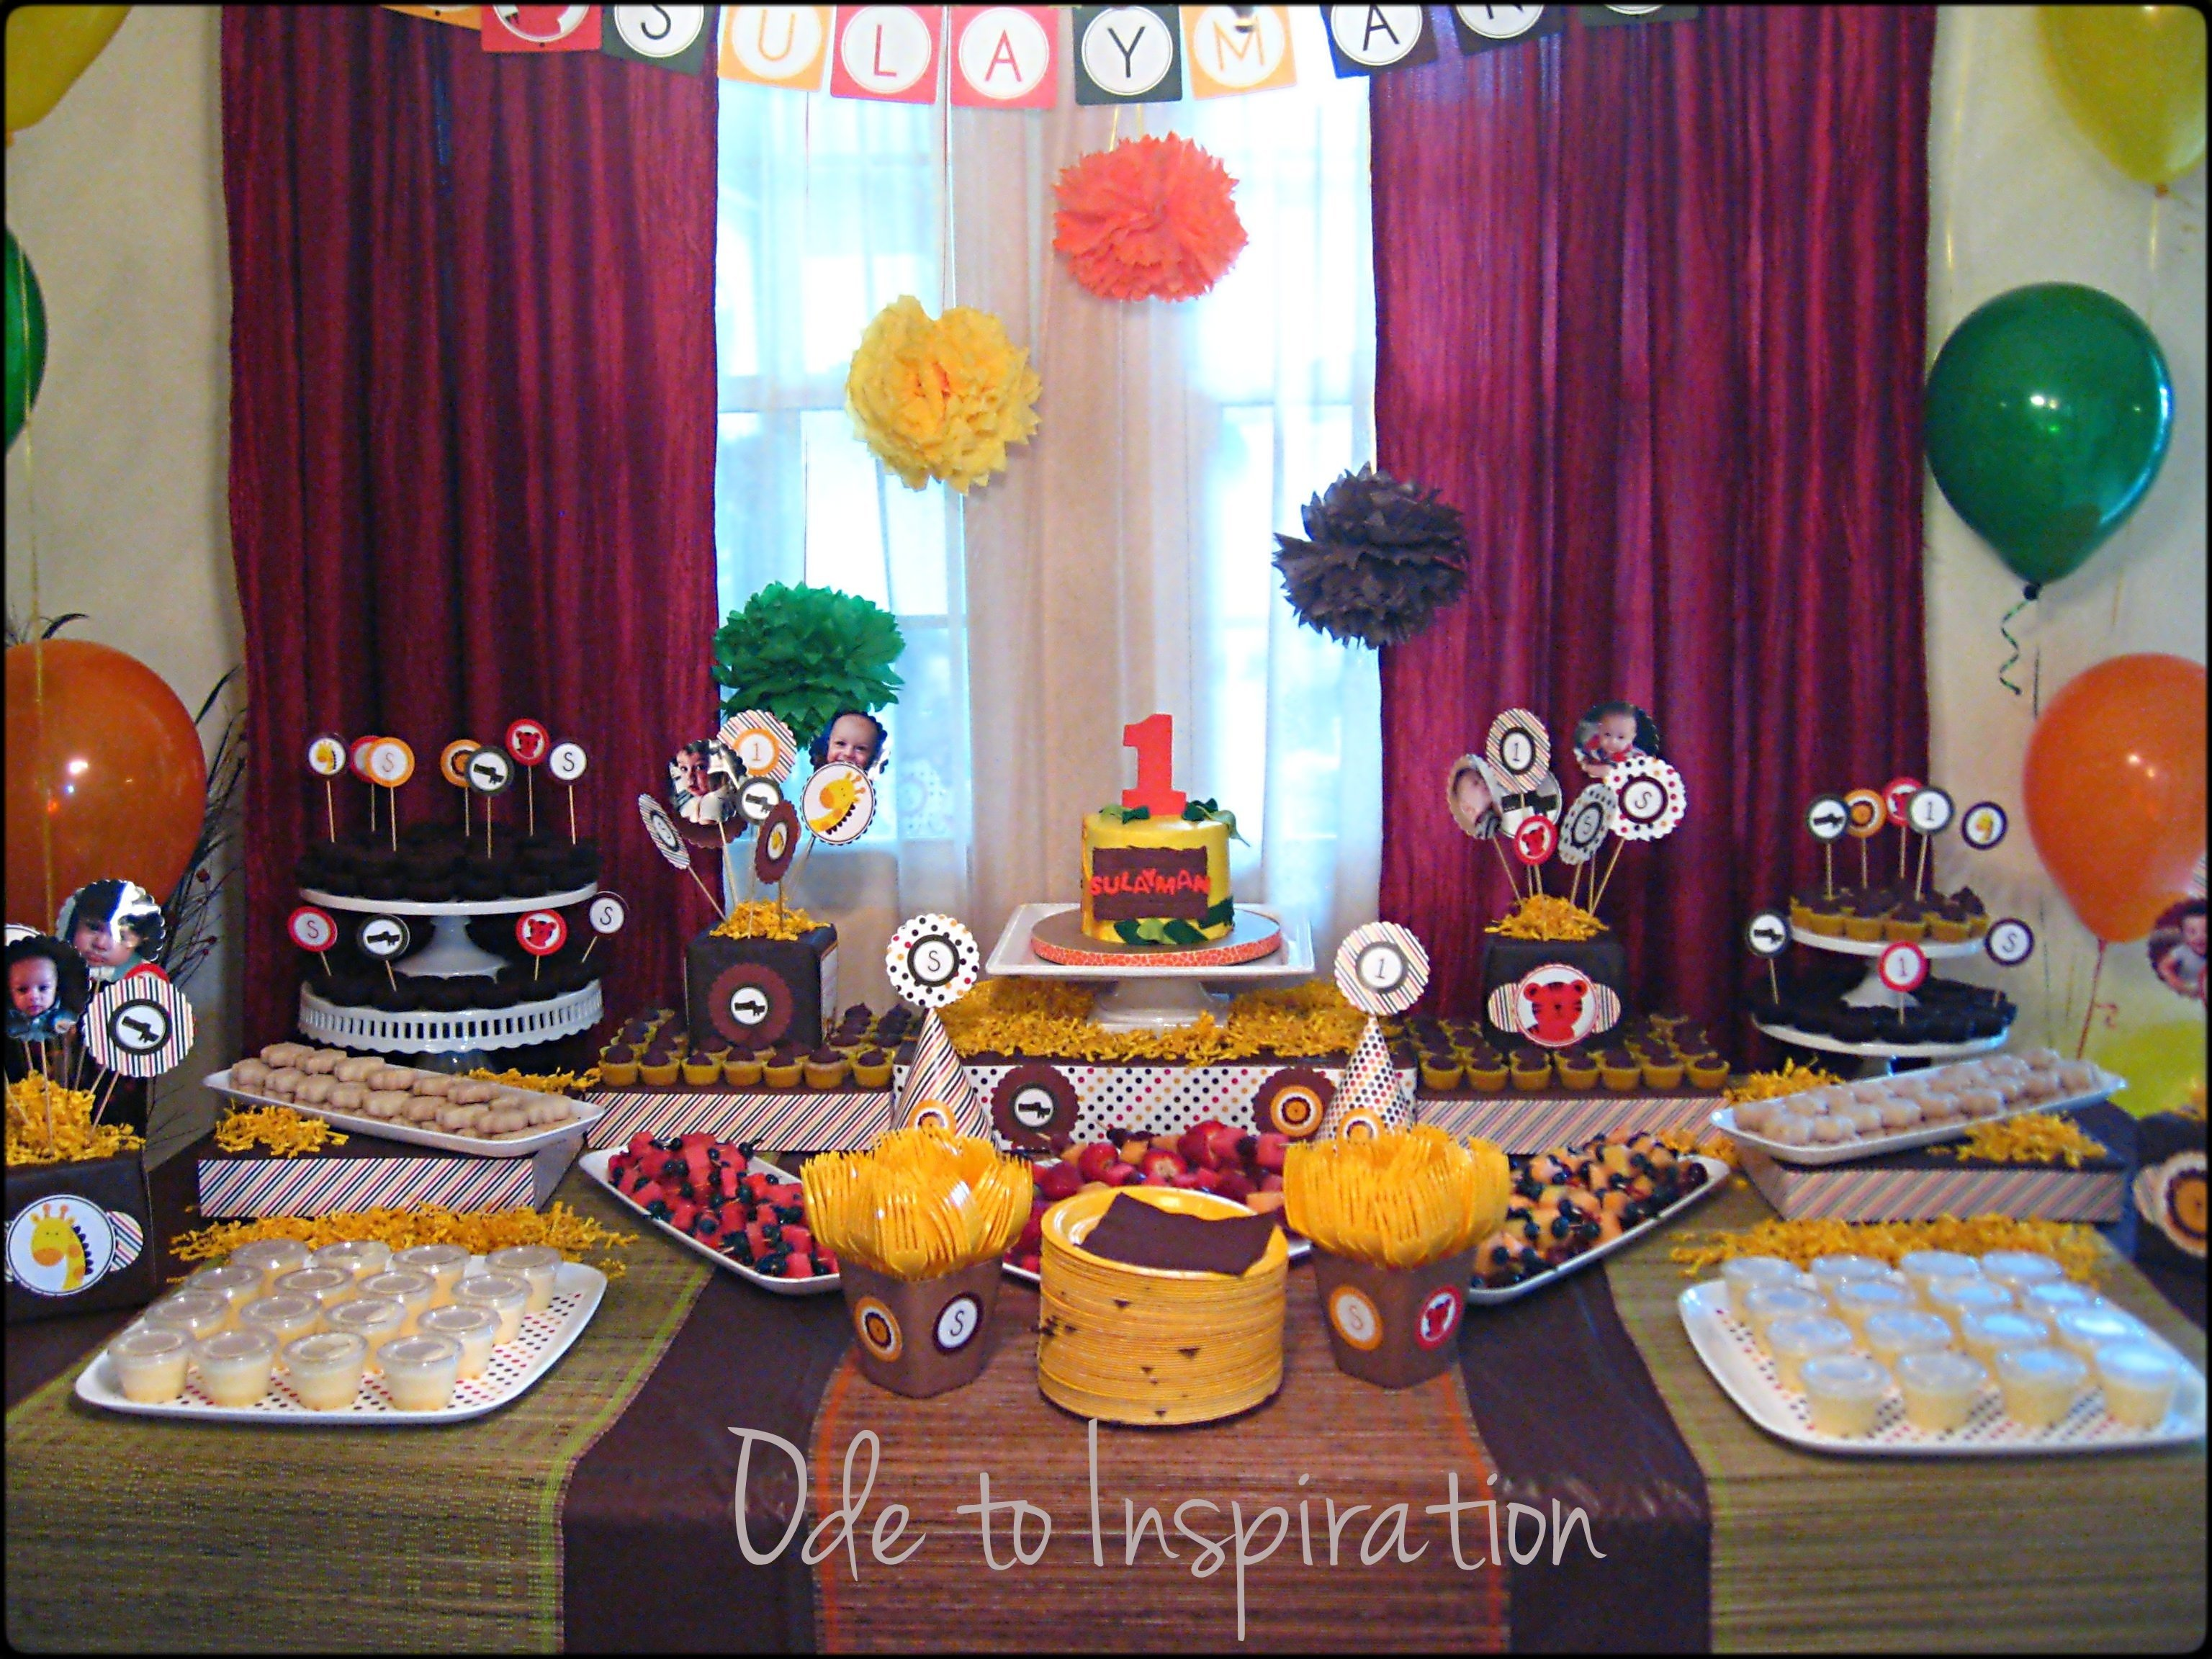 10 Attractive Surprise Birthday Party Ideas For Adults birthday house party ideas for adults inspiring home party ideas 2020